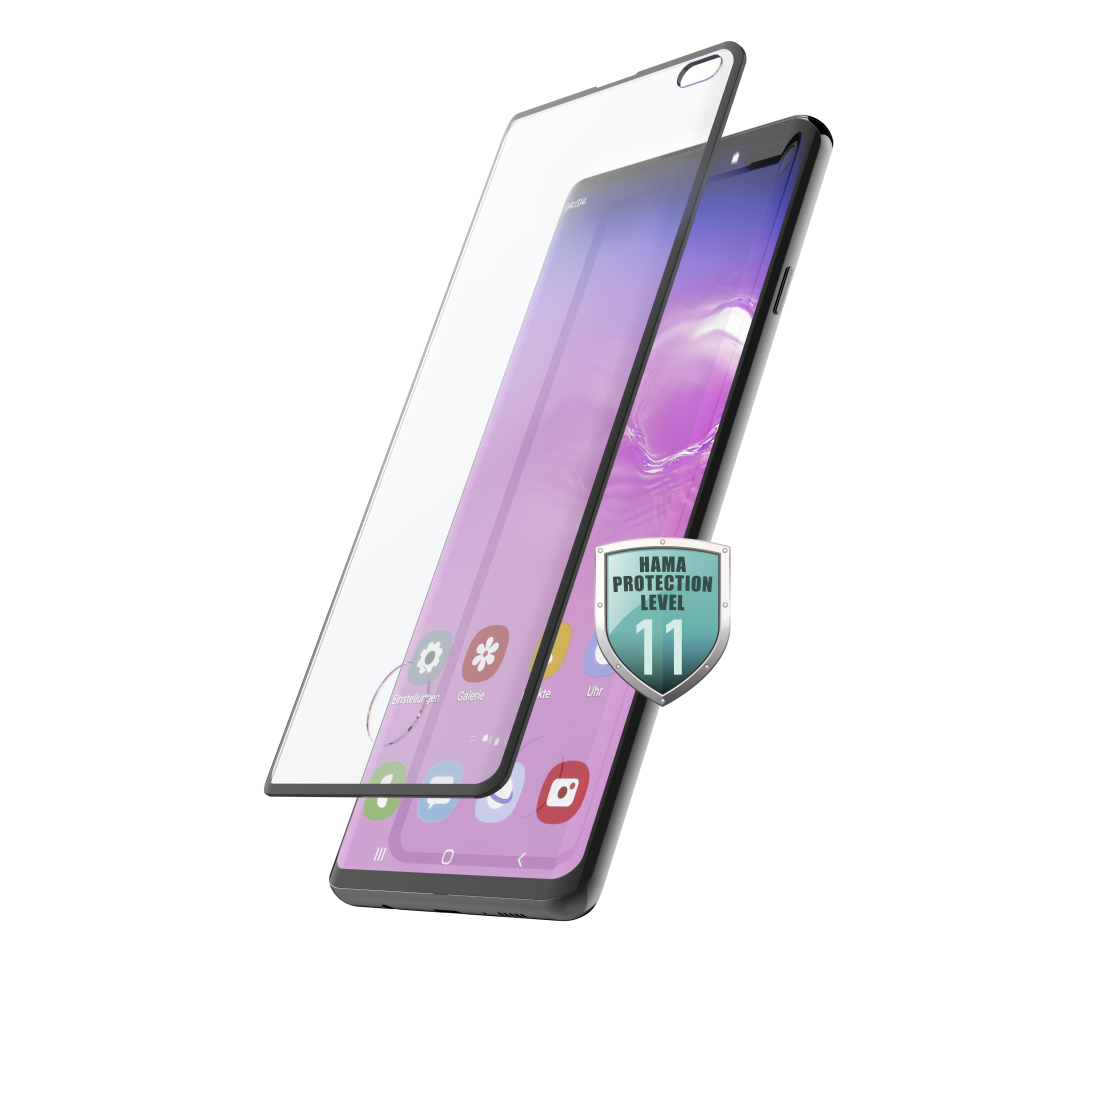 abx High-Res Image - Hama, Verre de protection Full-Screen 3D pour Samsung Galaxy S10+, noir